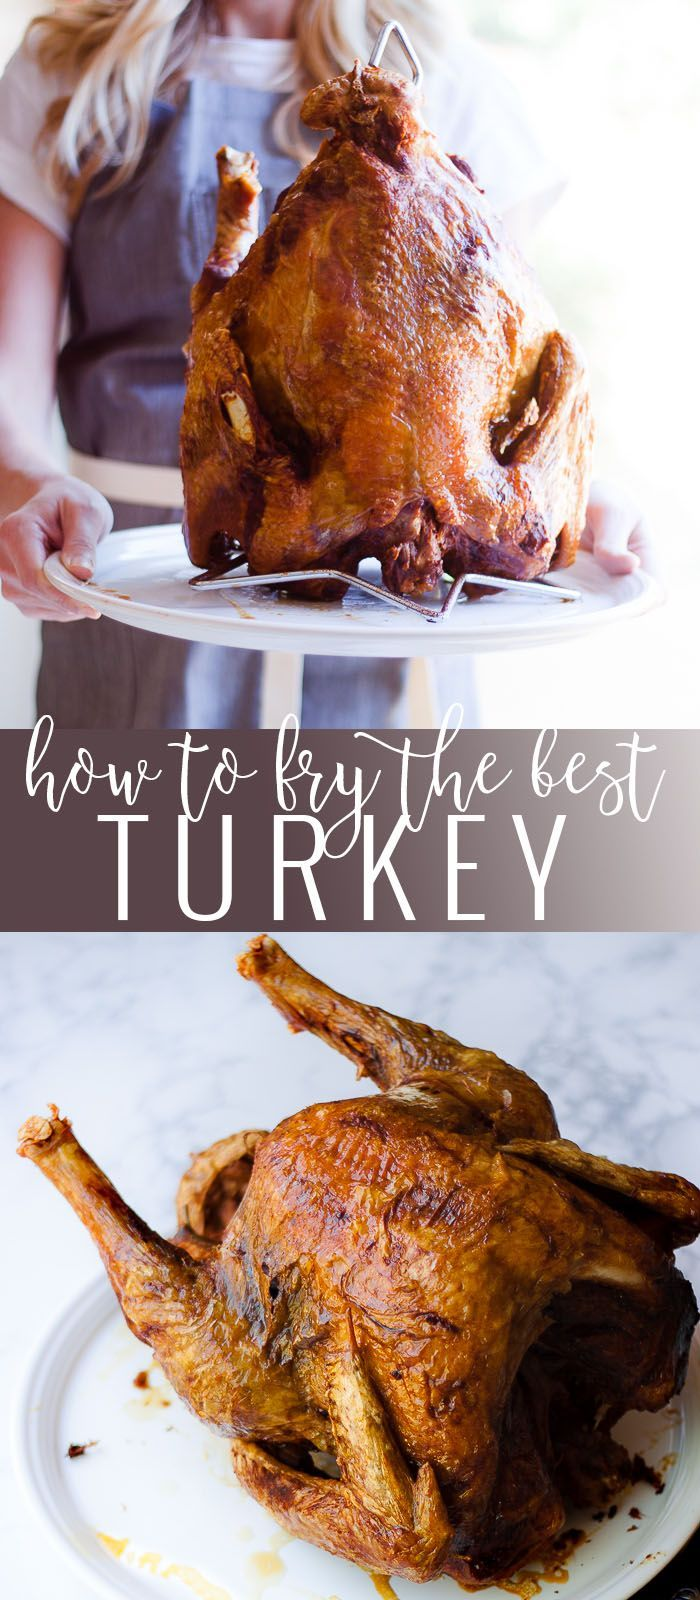 How to Fry The Best Turkey | how to fry a turkey | turkey frying tips and tricks | thanksgiving turkey recipes | fried turkey recipes | how to make a fried turkey | thanksgiving tips and tricks || Oh So Delicioso #friedturkey #turkeyrecipe #thanksgiving #friedturkeyrecipe